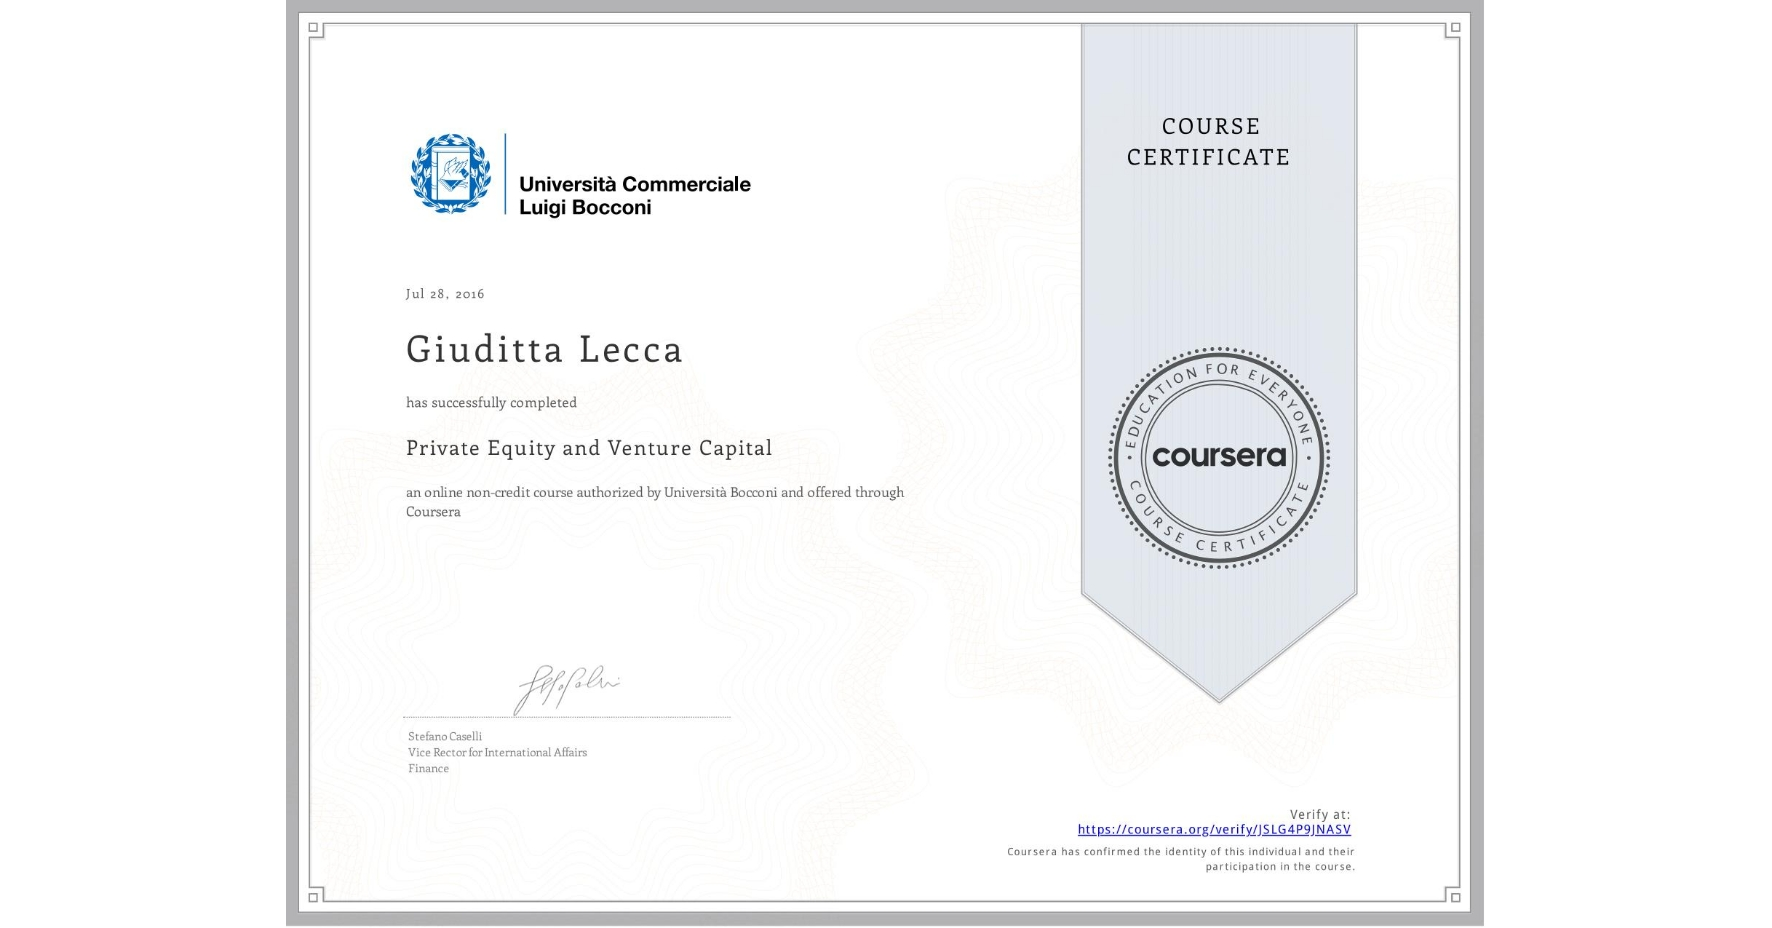 View certificate for Giuditta Lecca, Private Equity and Venture Capital, an online non-credit course authorized by Università Bocconi and offered through Coursera